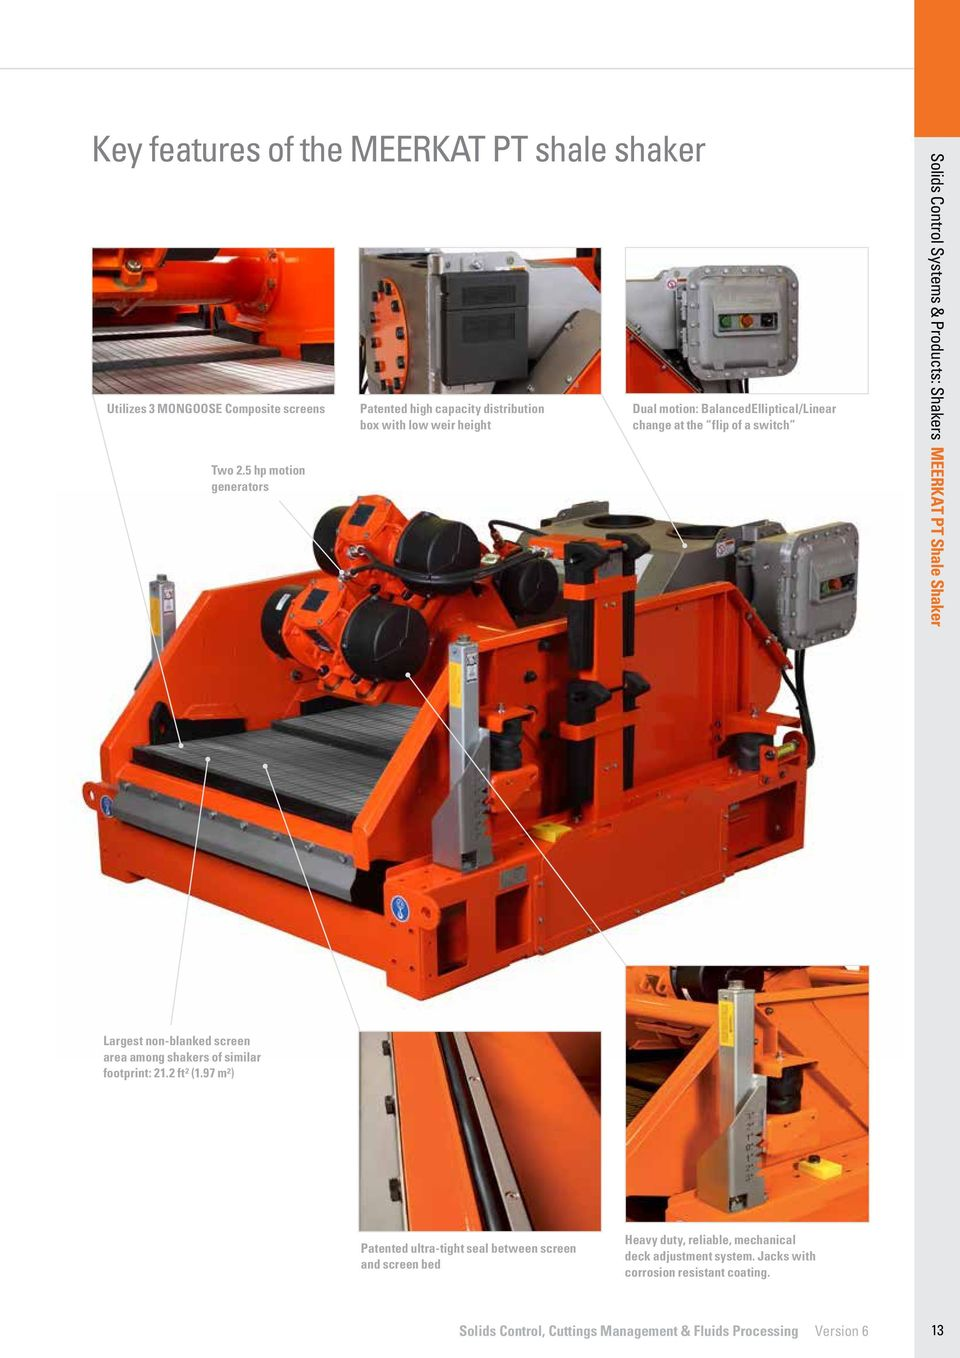 Solids Control Systems & Products: Shakers MEERKAT PT Shale Shaker Largest non-blanked screen area among shakers of similar footprint: 21.2 ft² (1.